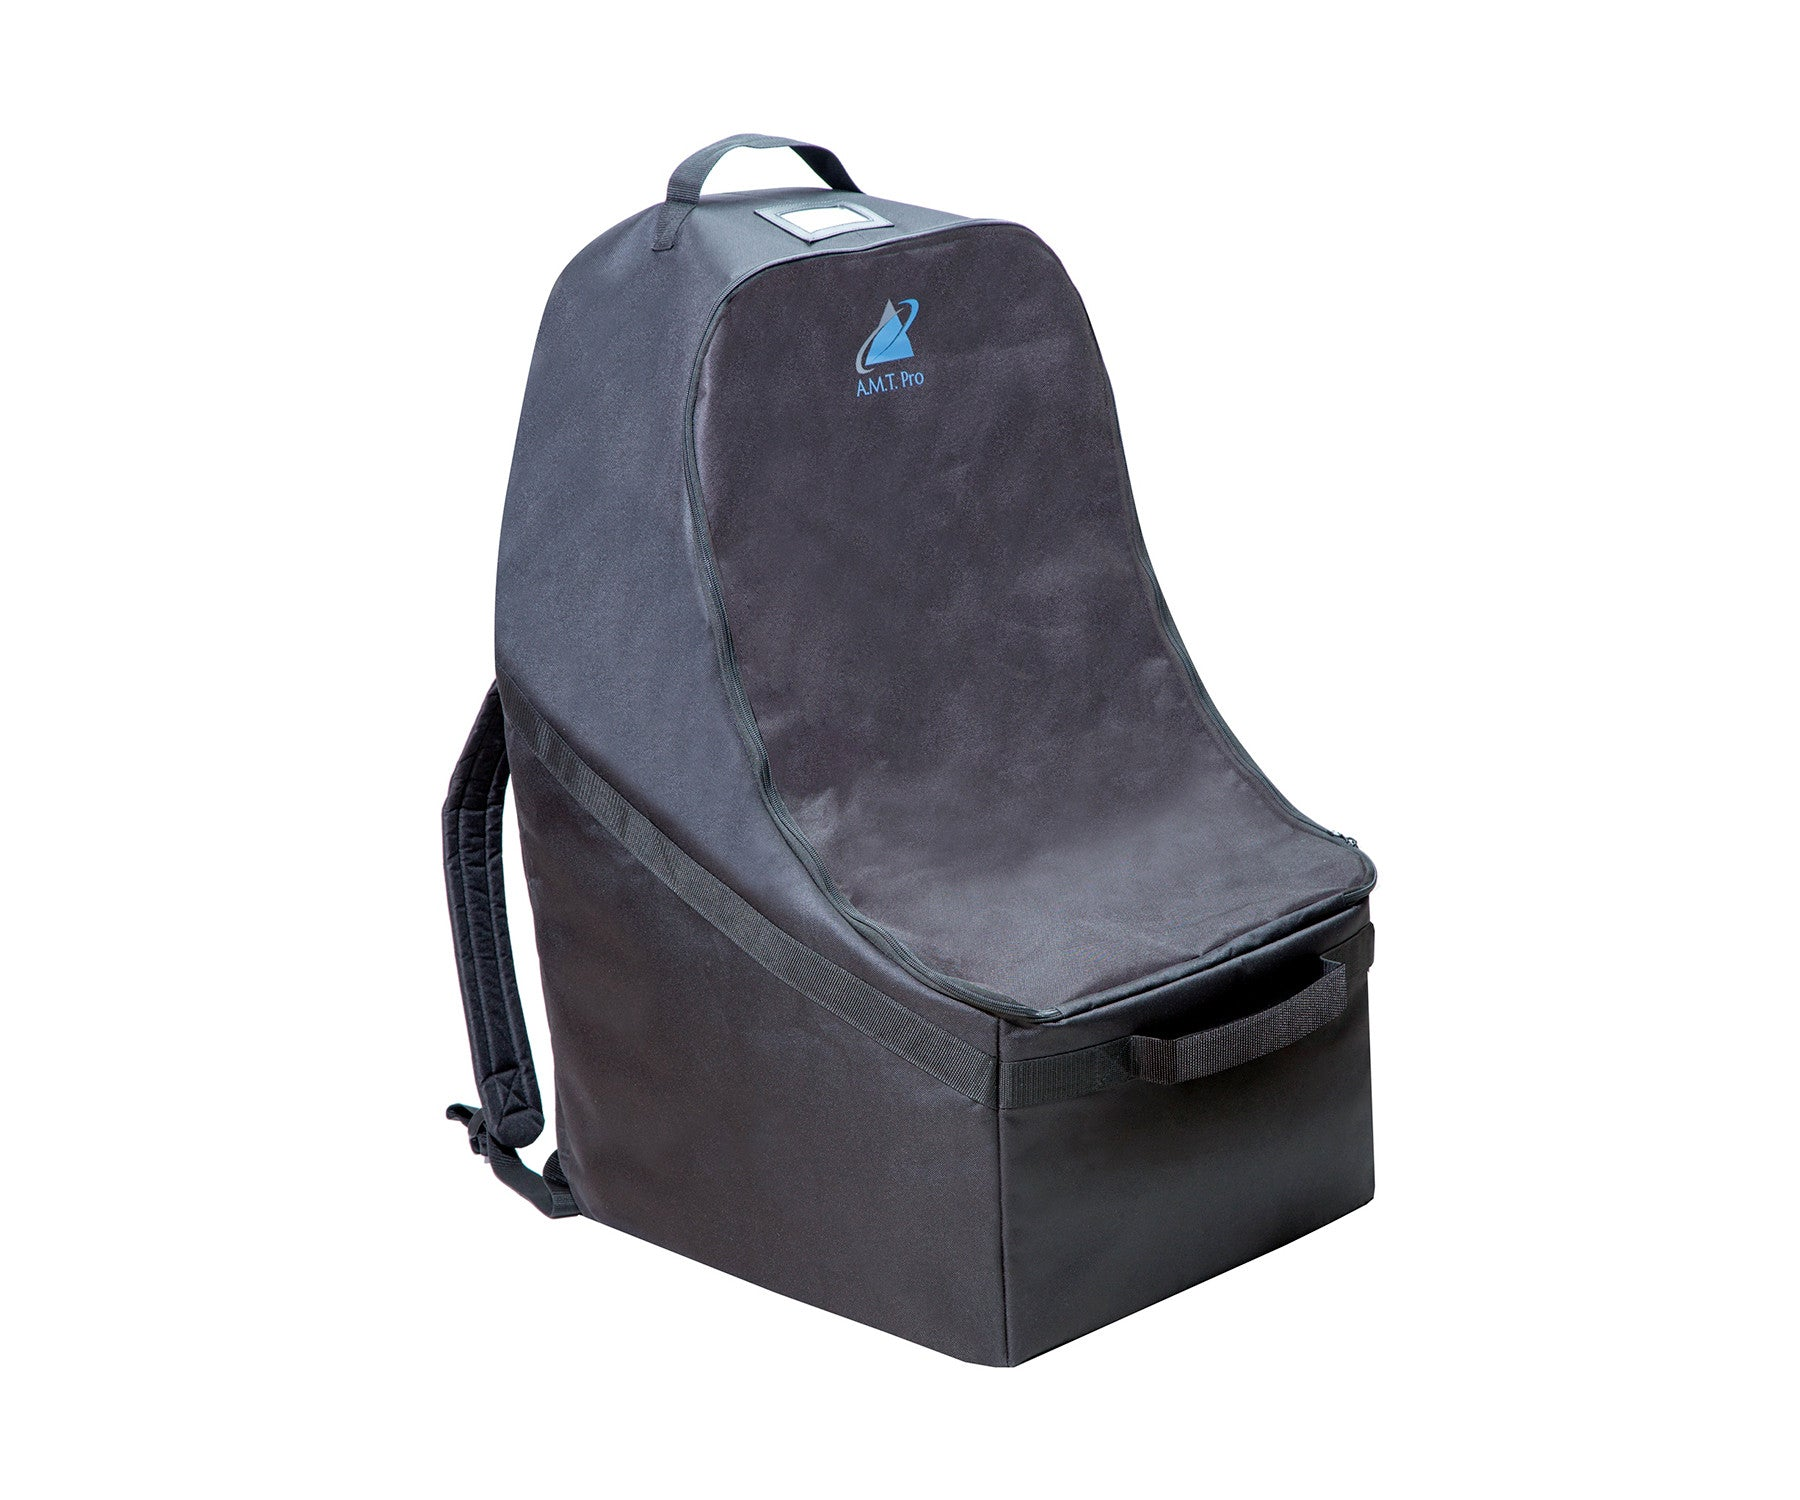 --Premium Car Seat Travel Bag | AMT PRO--